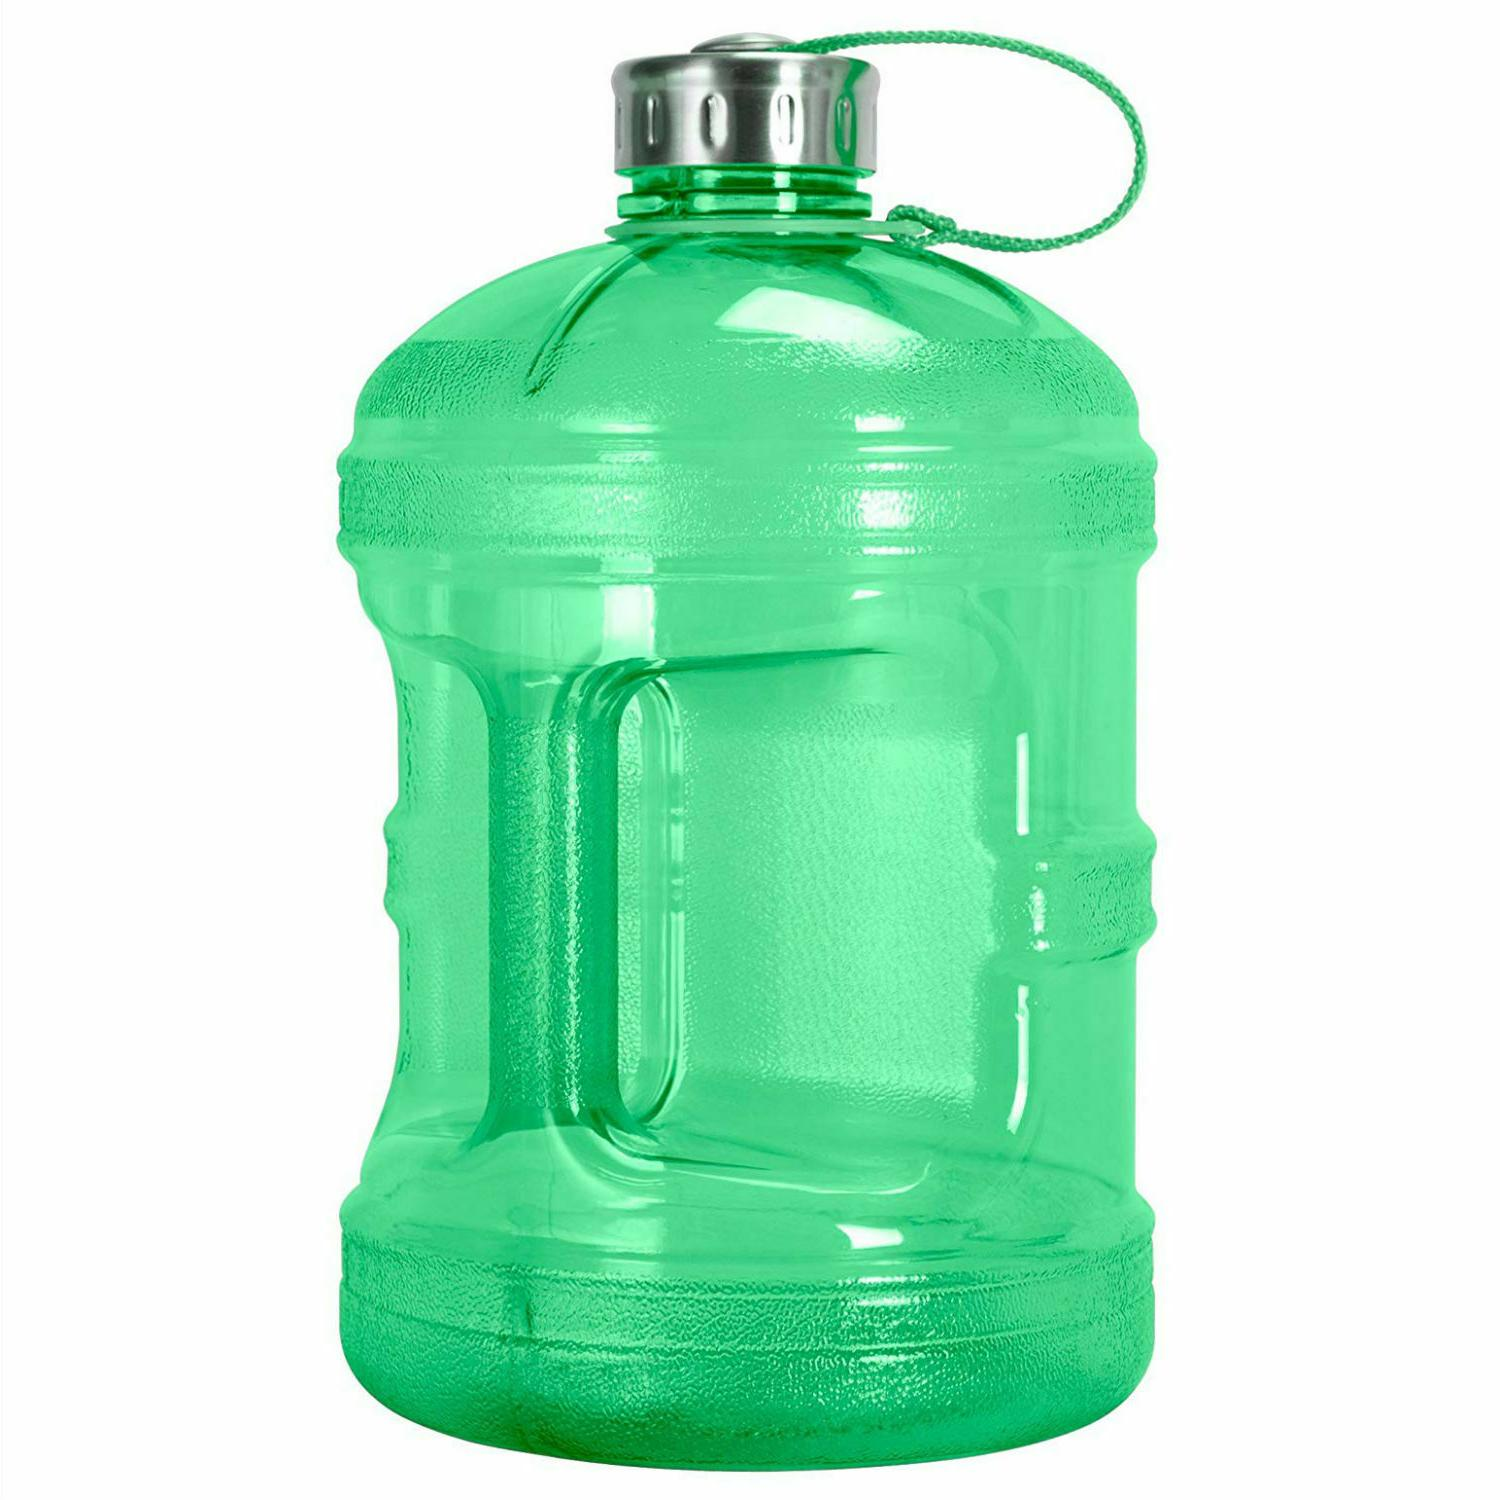 1-Gallon Jug Free Steel Leak-Proof Cap